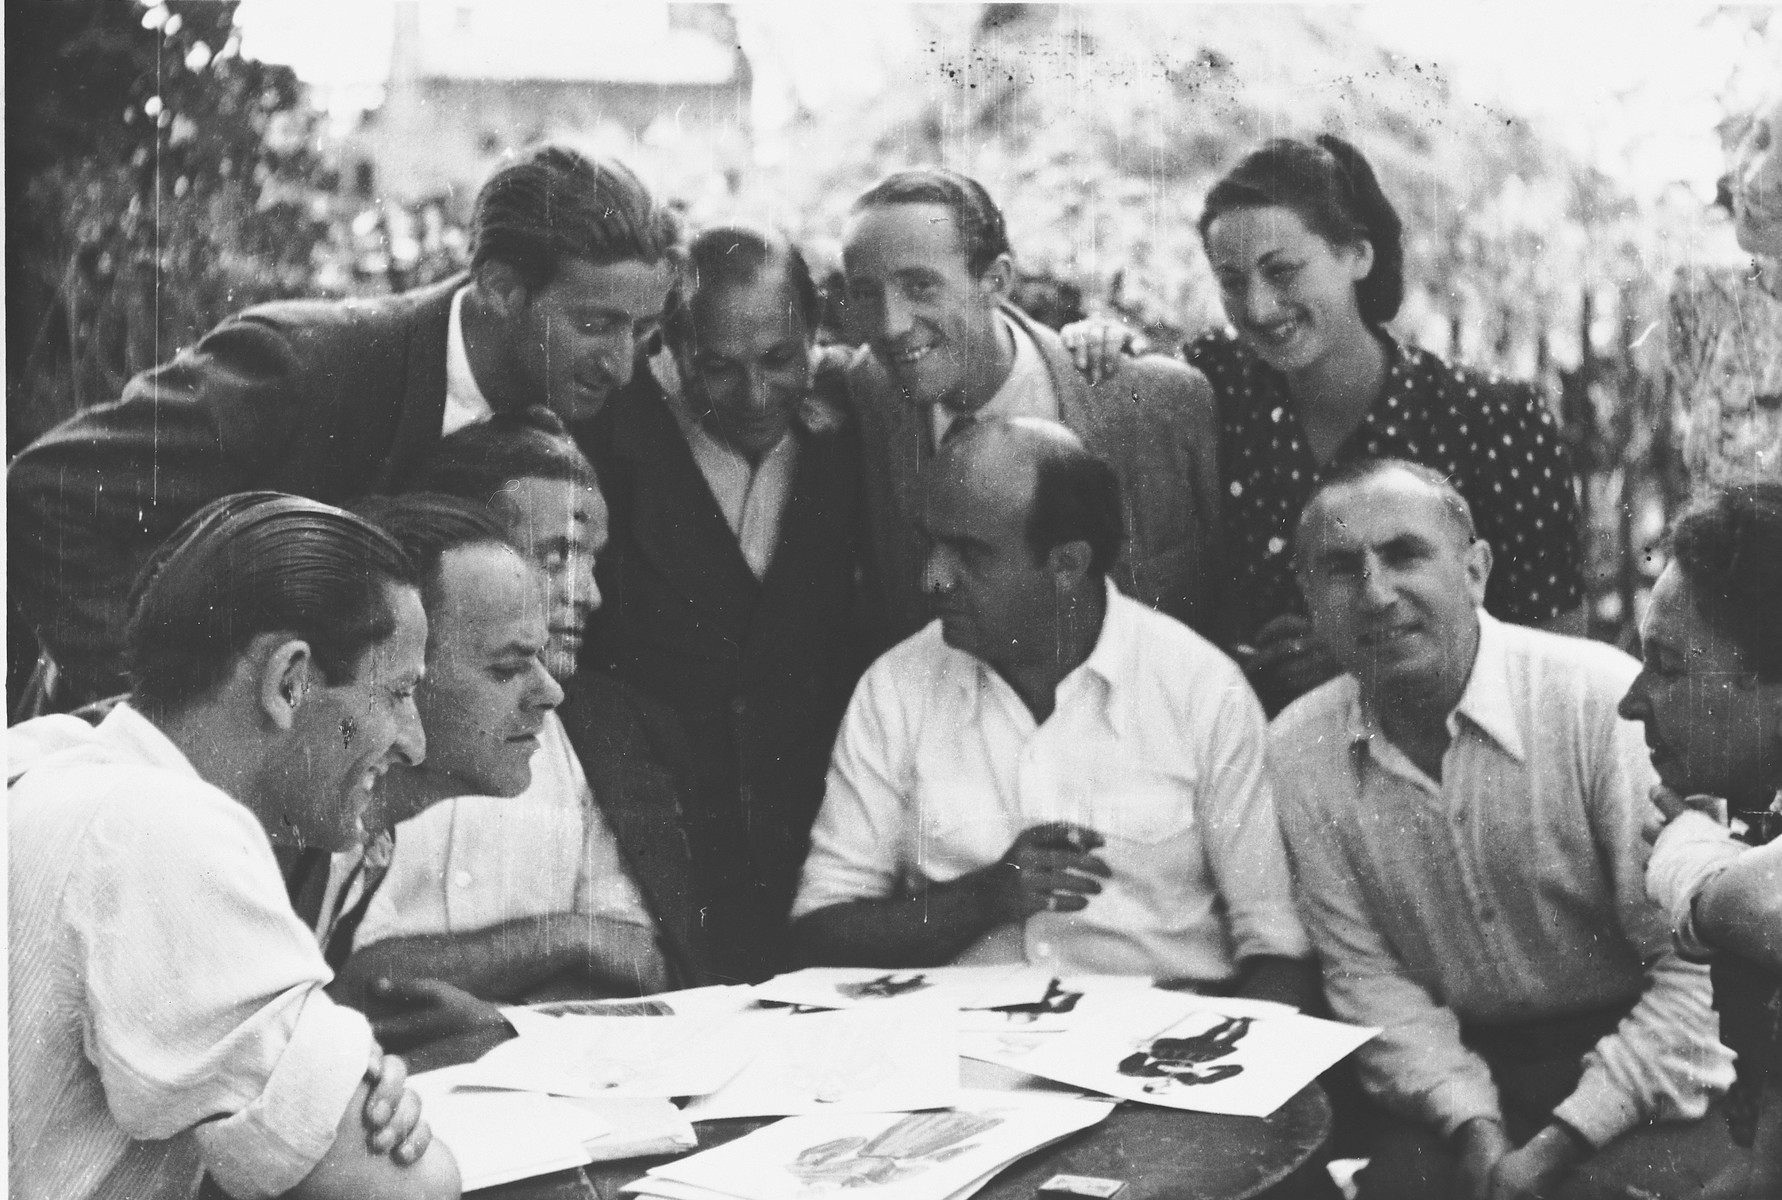 Members of the MIT (Munich Jewish Theater) theatrical group examine costume designs while seated around a table in the Landsberg DP camp.